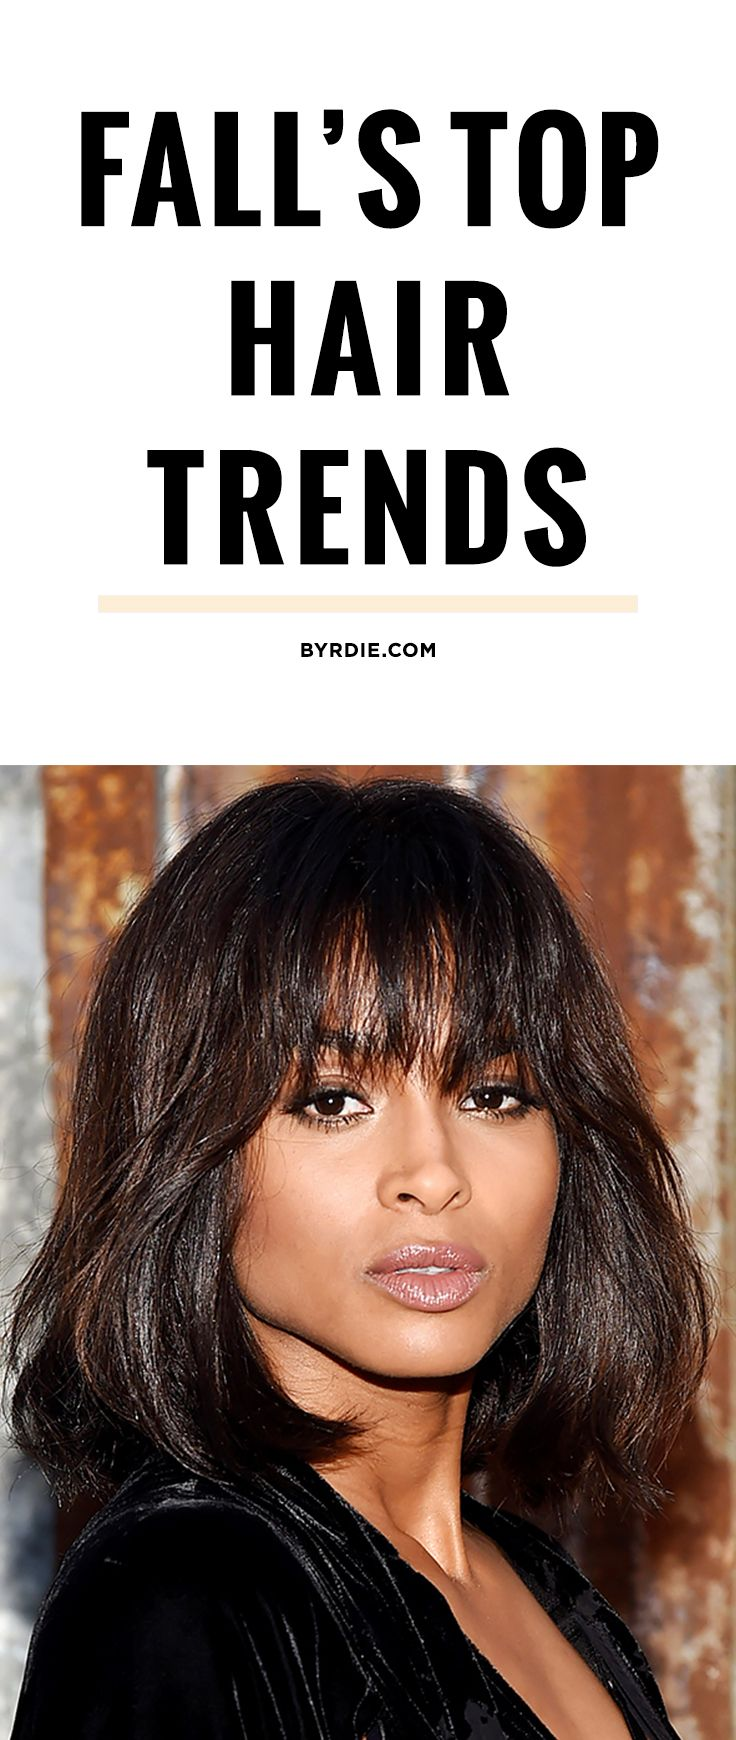 A celebrity hairstylist decodes fall's top 3 hair trends